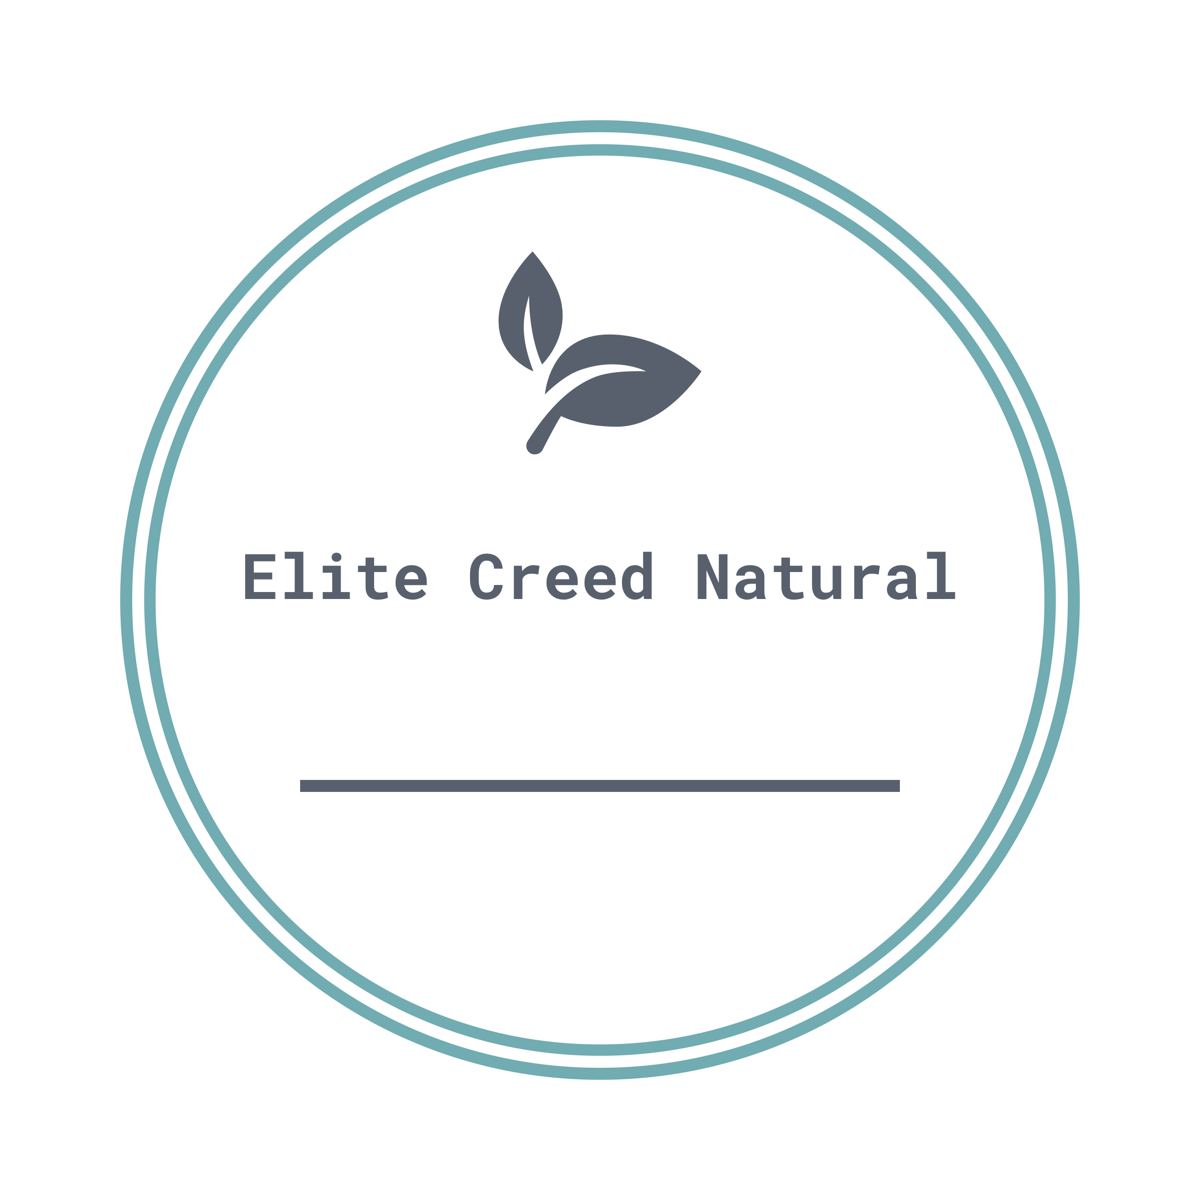 Elite Creed Natural